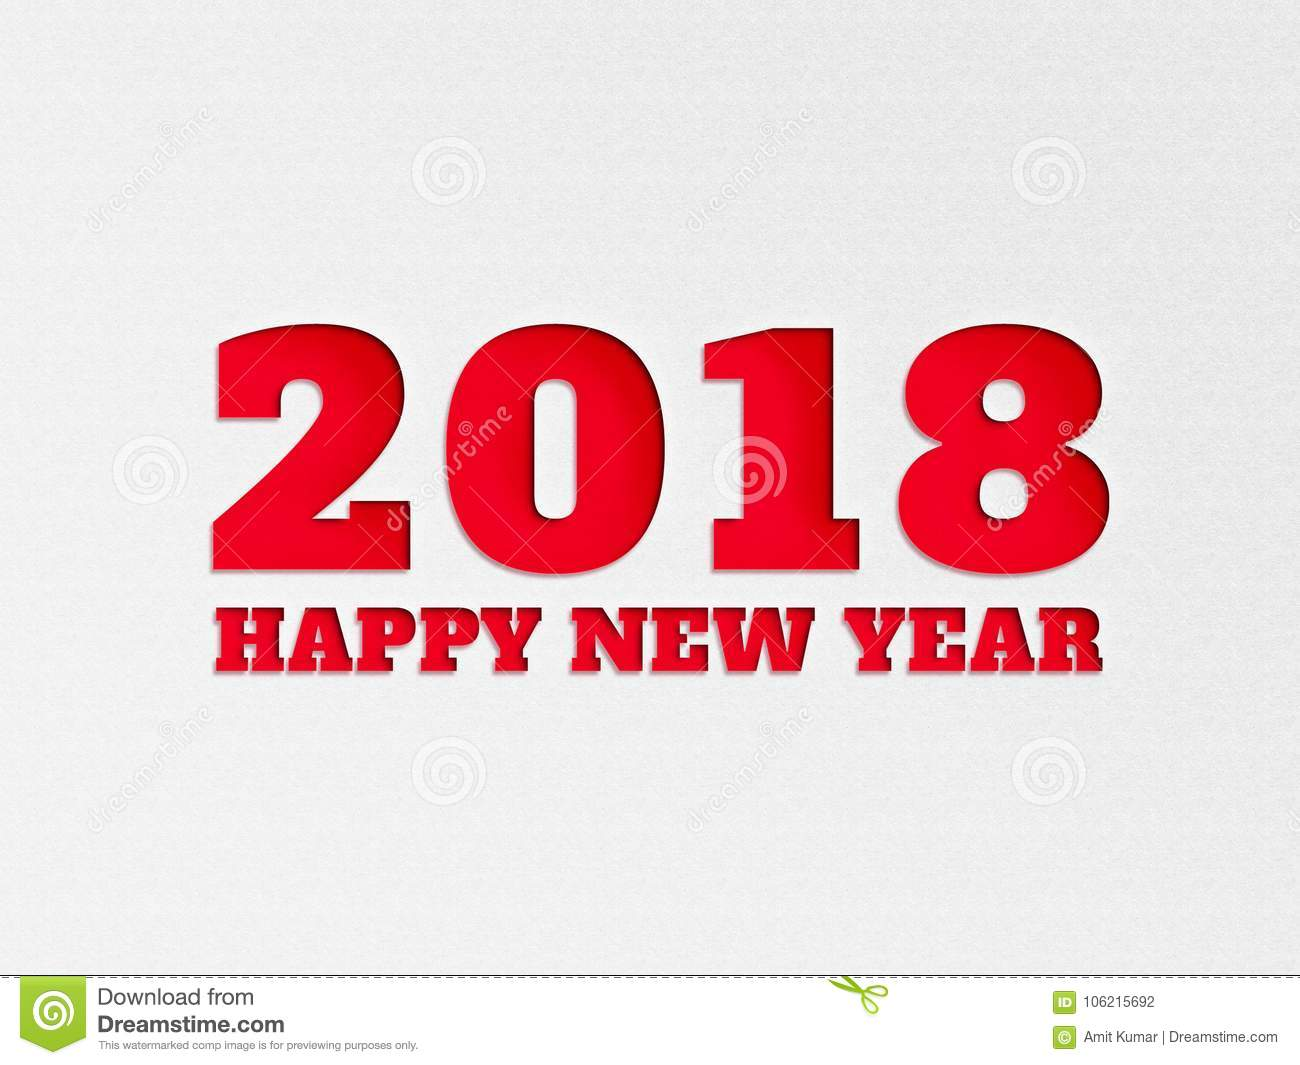 happy new year 2018 wallpaper banner background flower with paper cut out effect in red color